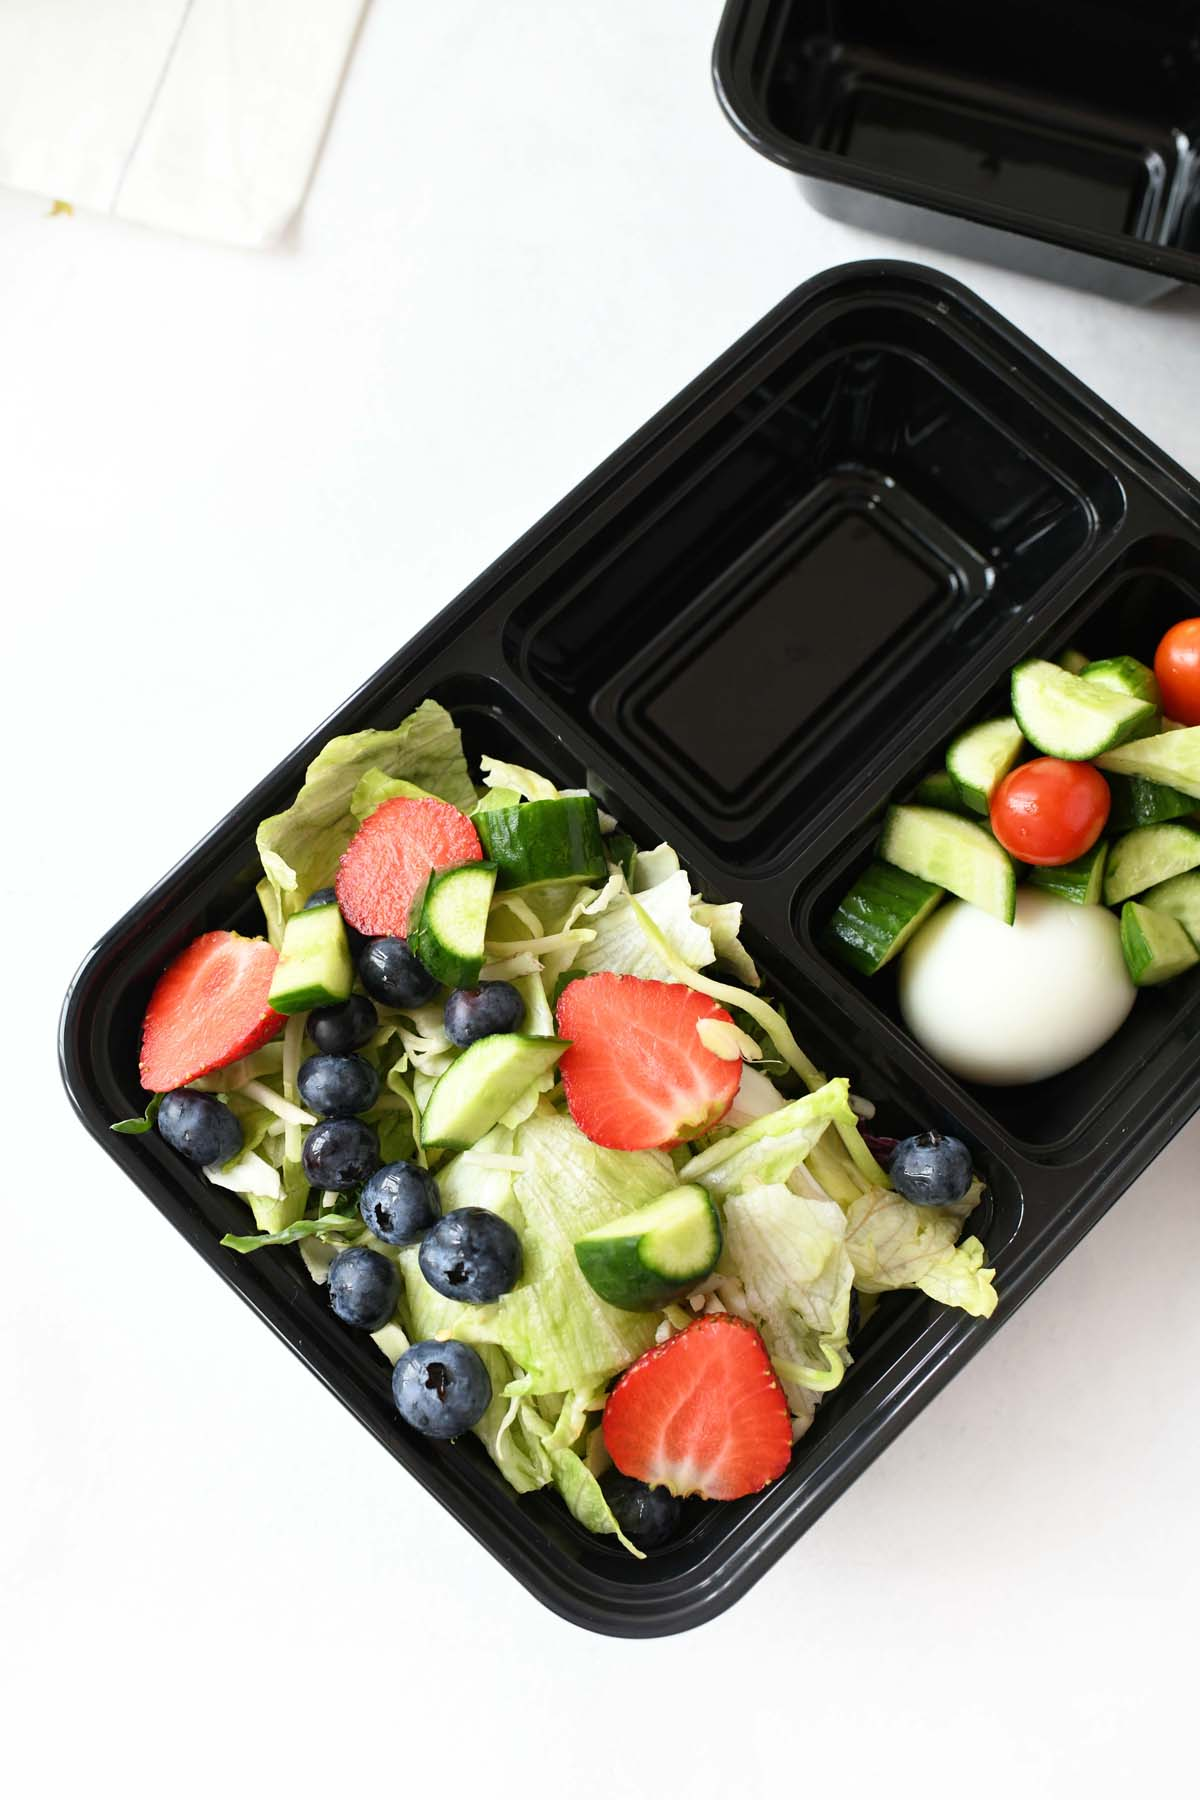 Berry salad in a meal prep container.